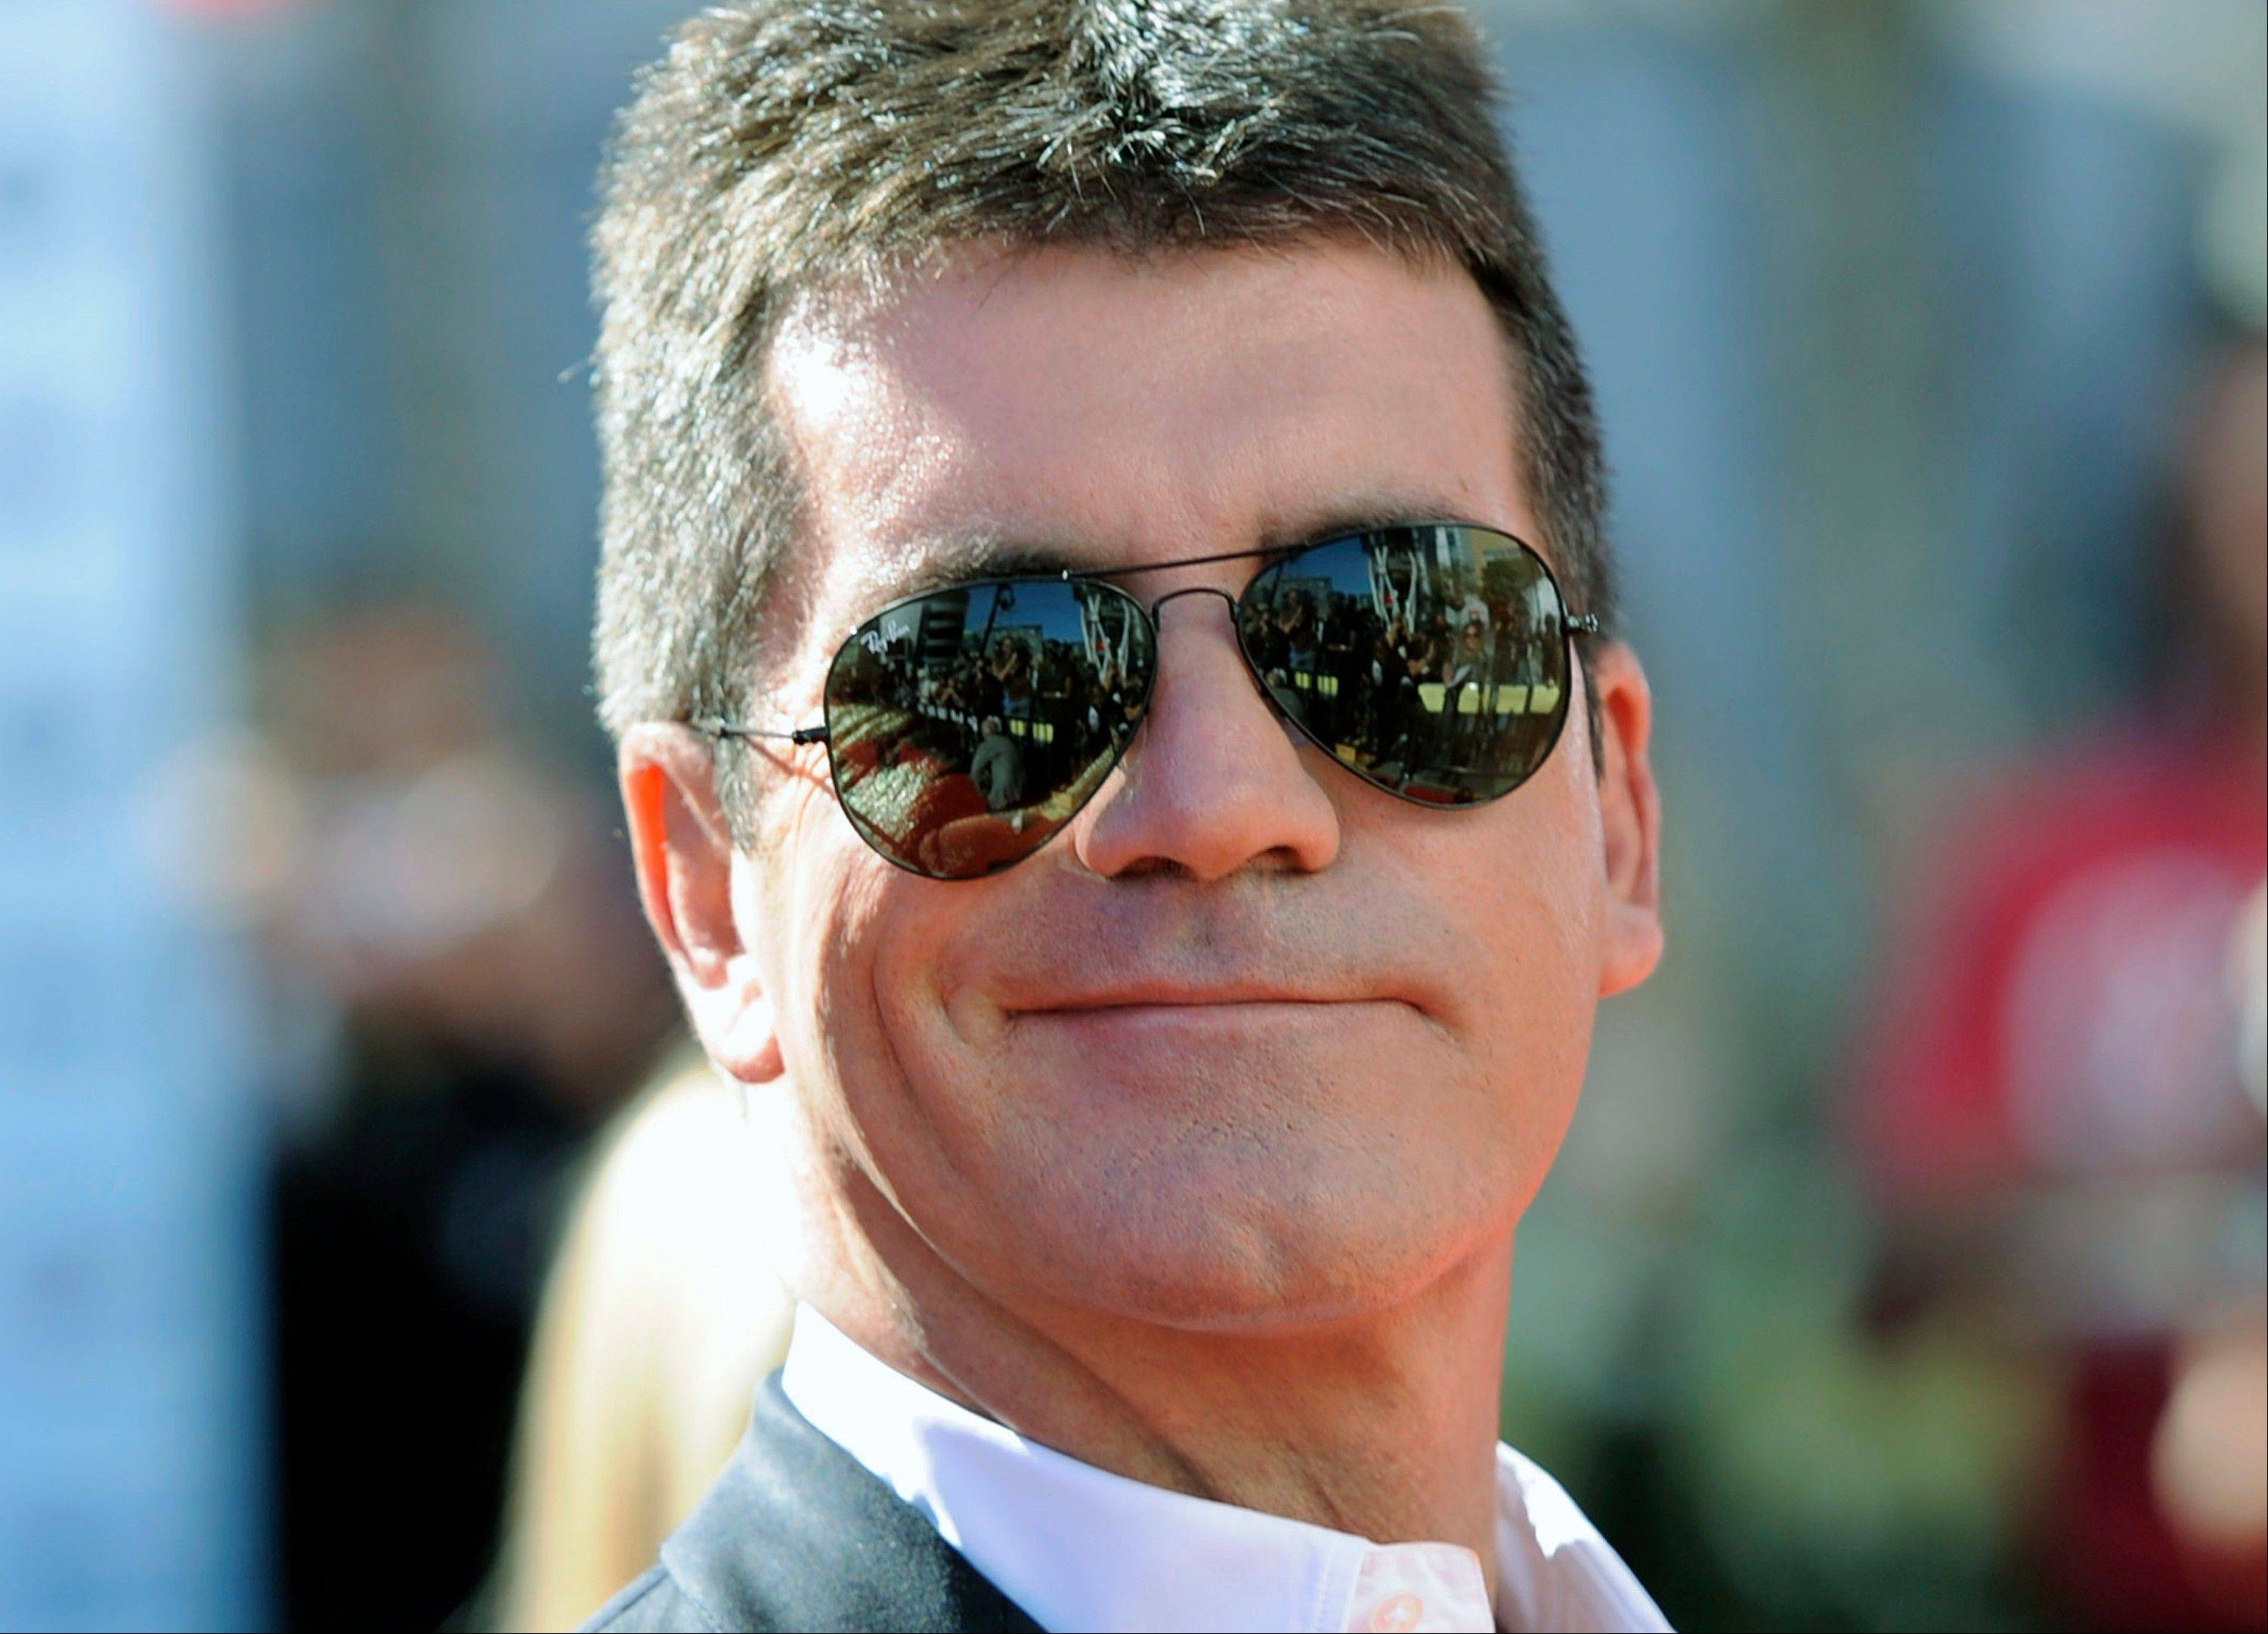 Simon Cowell�s Syco Entertainment company on Thursday launched a yearlong YouTube channel global online talent contest called � The You Generation,� looking for talent in all areas including musicians, photographers, makeup artists, magicians and chefs, with auditions in a different category of talent every two weeks and a grand finale after one year.